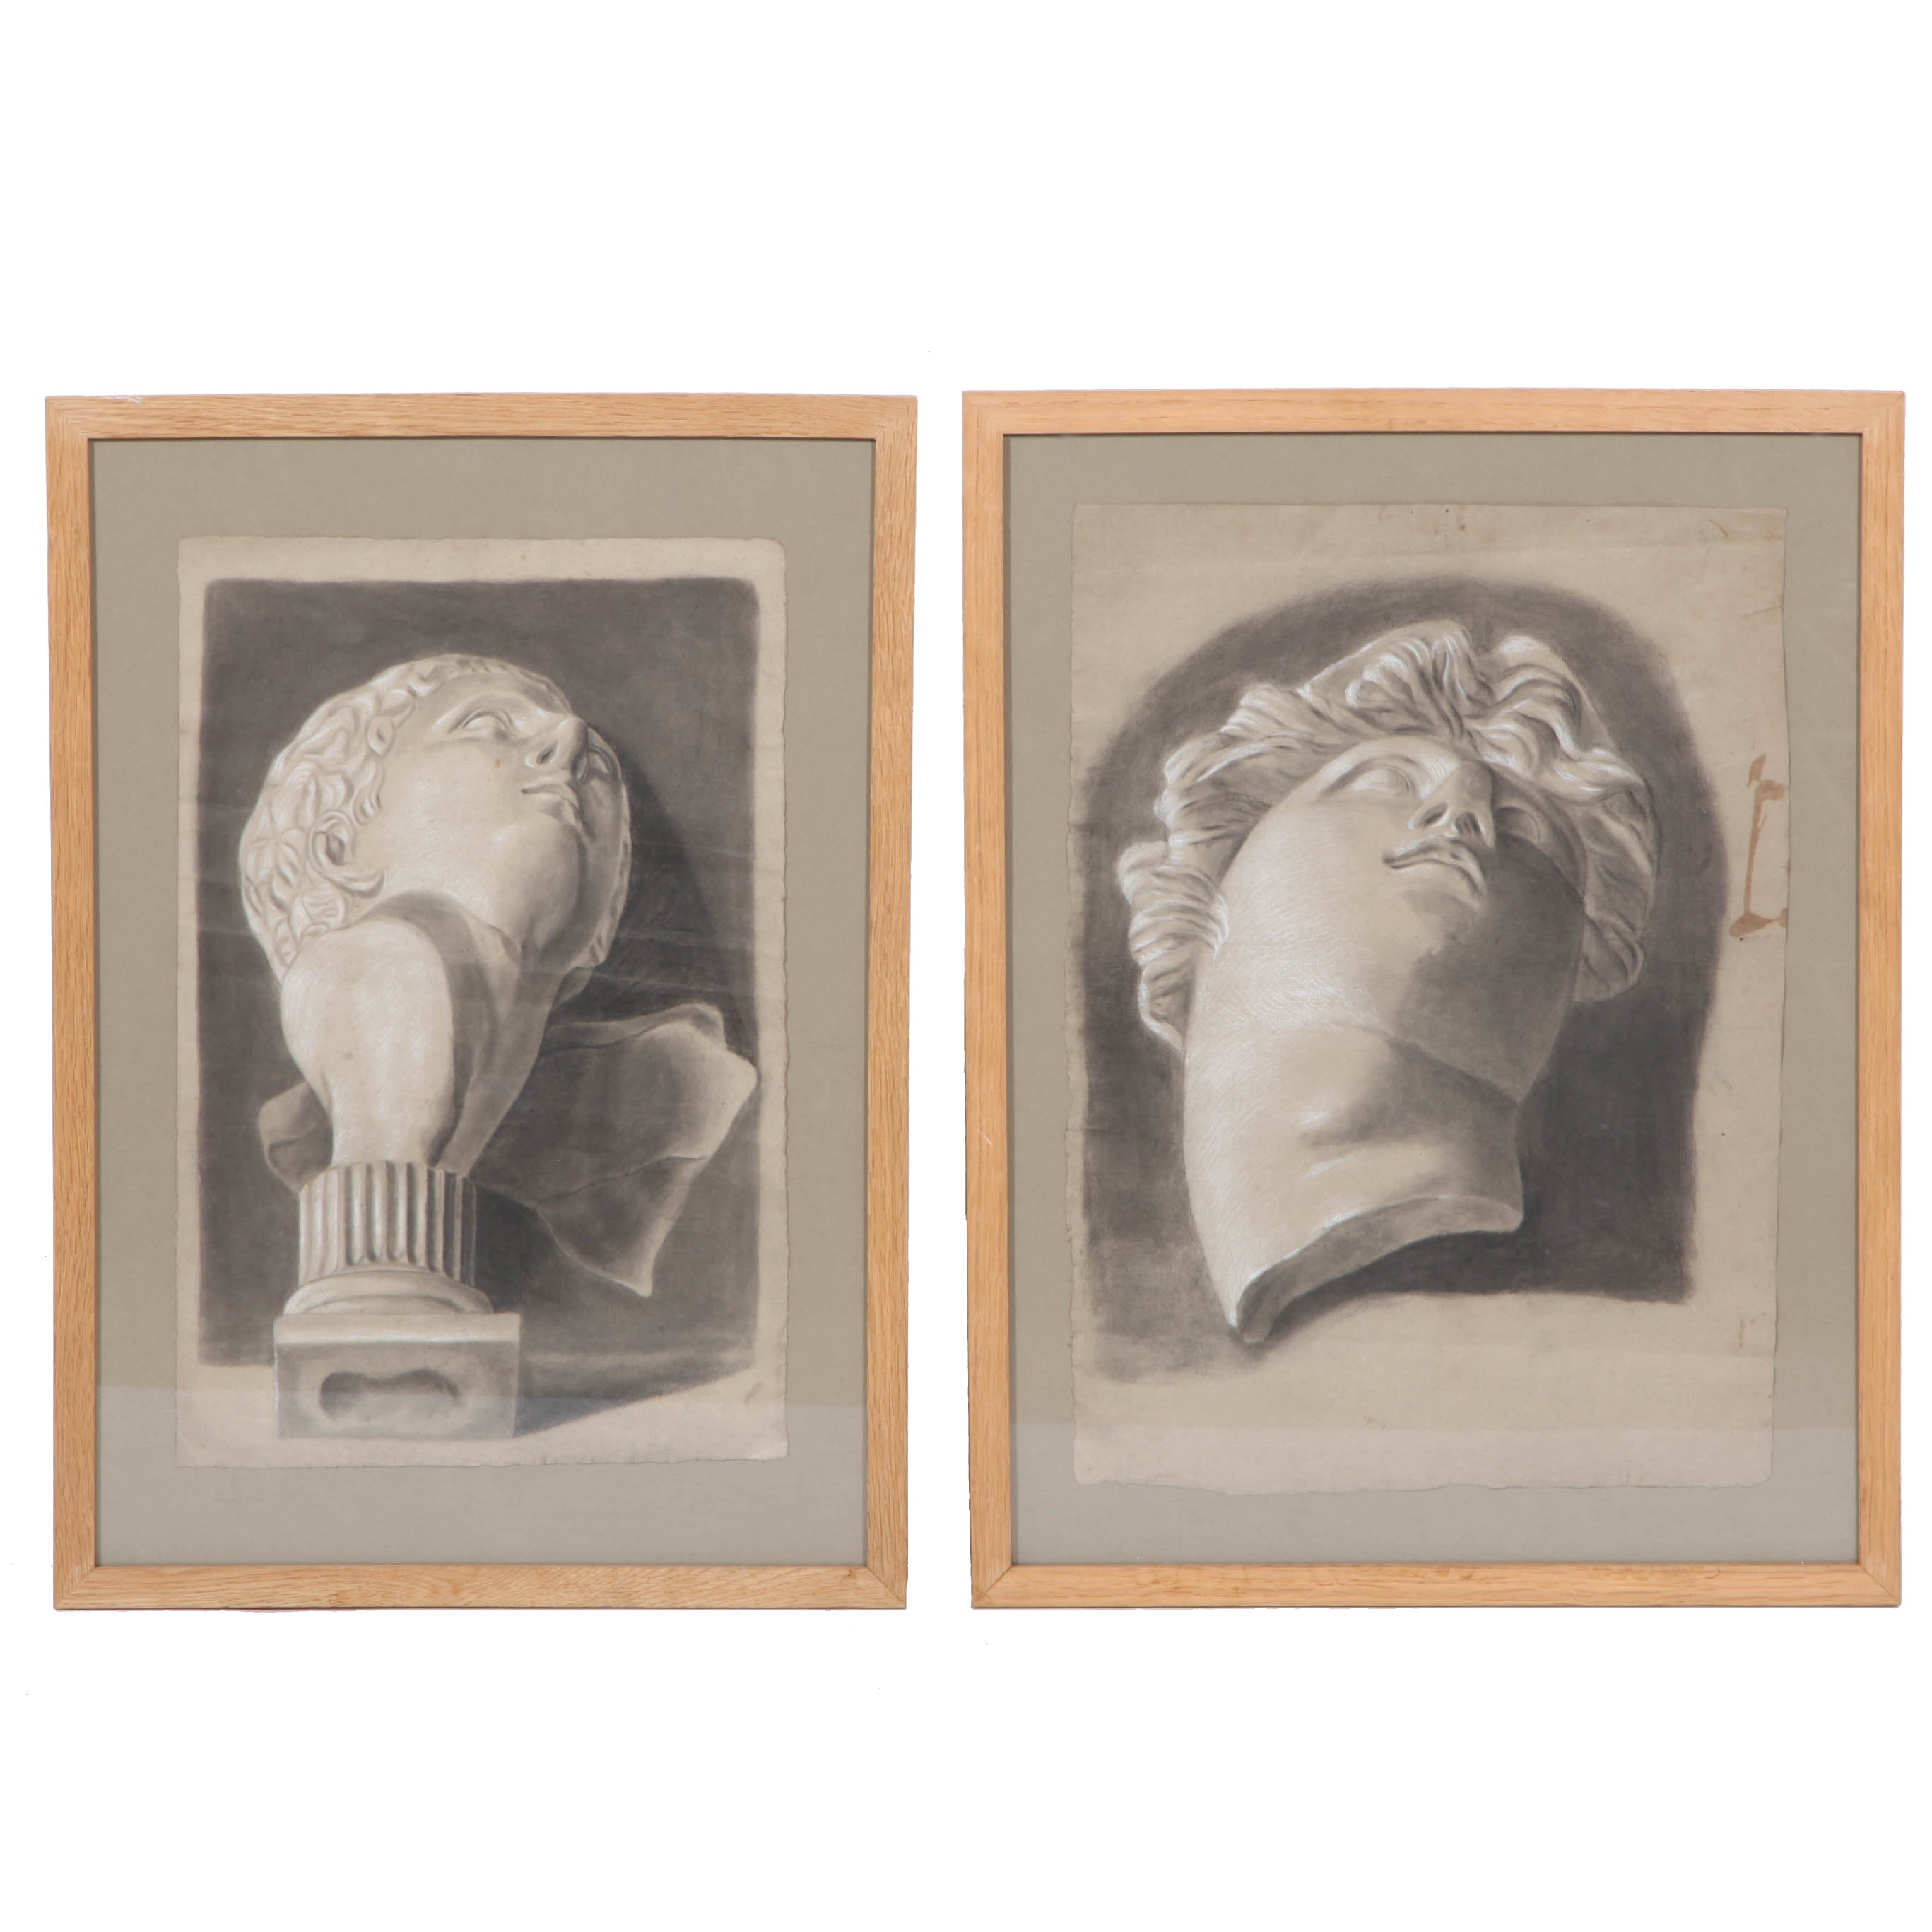 Framed Charcoal Drawings